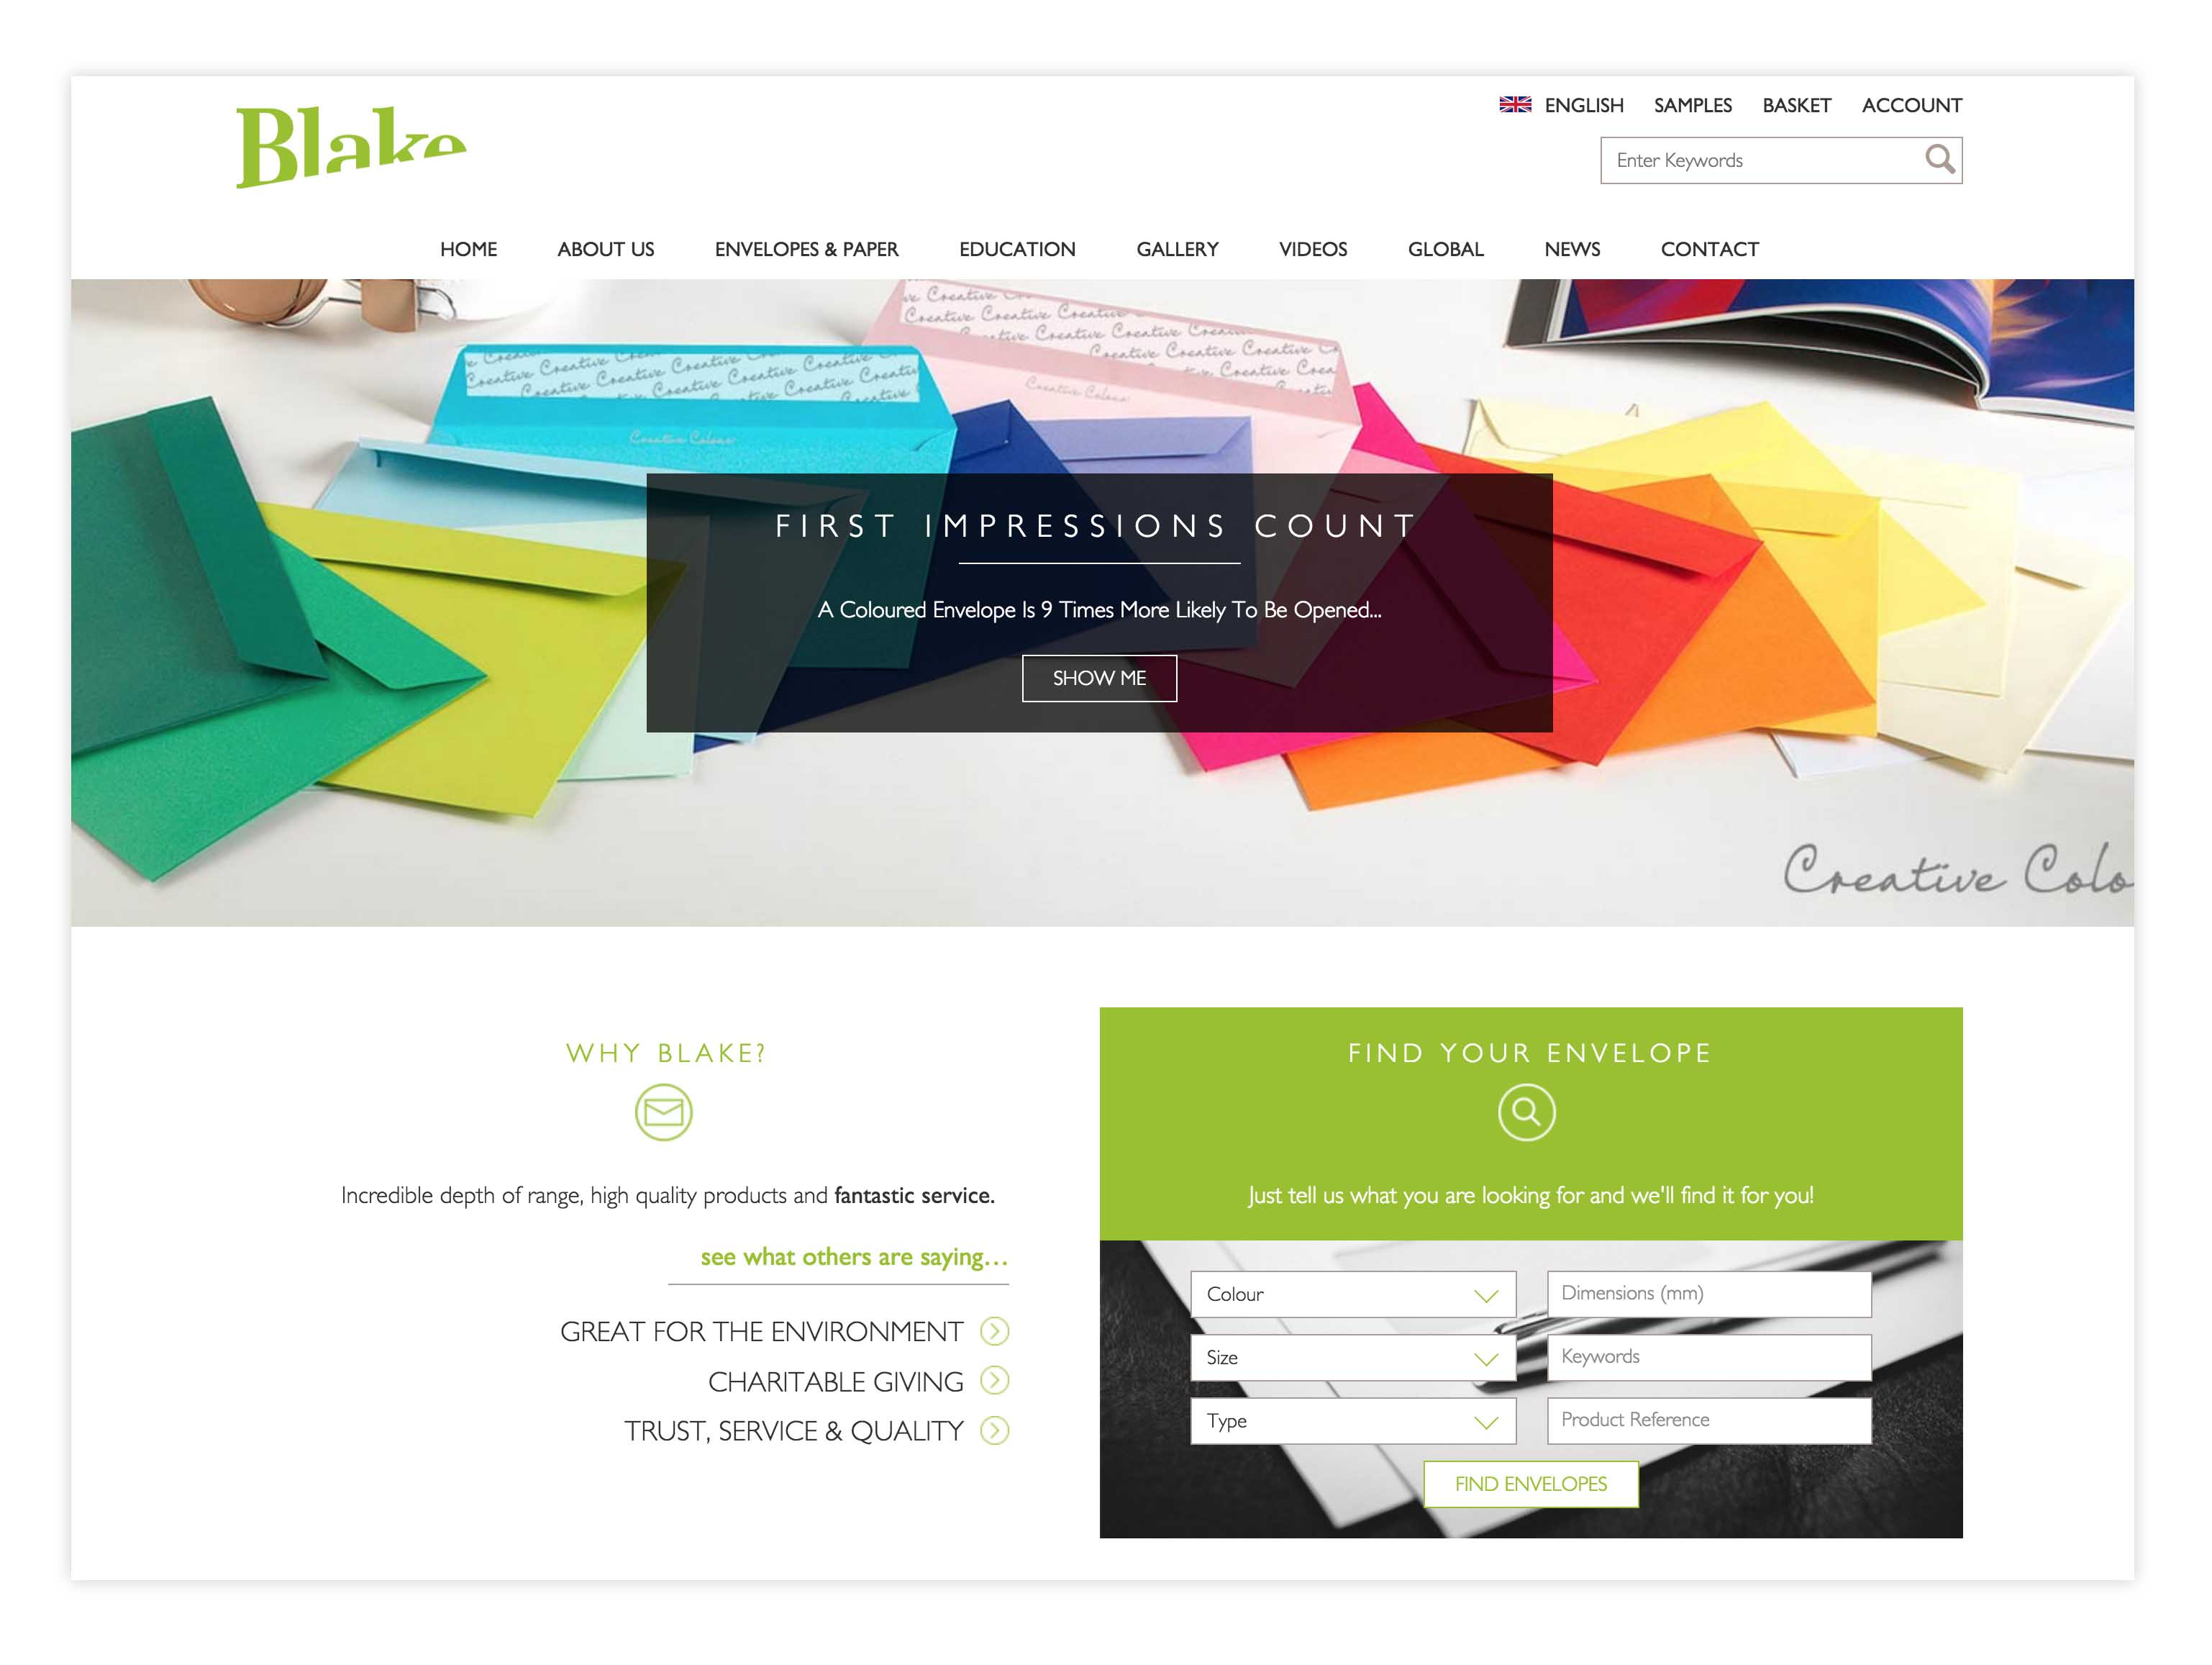 blake envelopes web design b2b